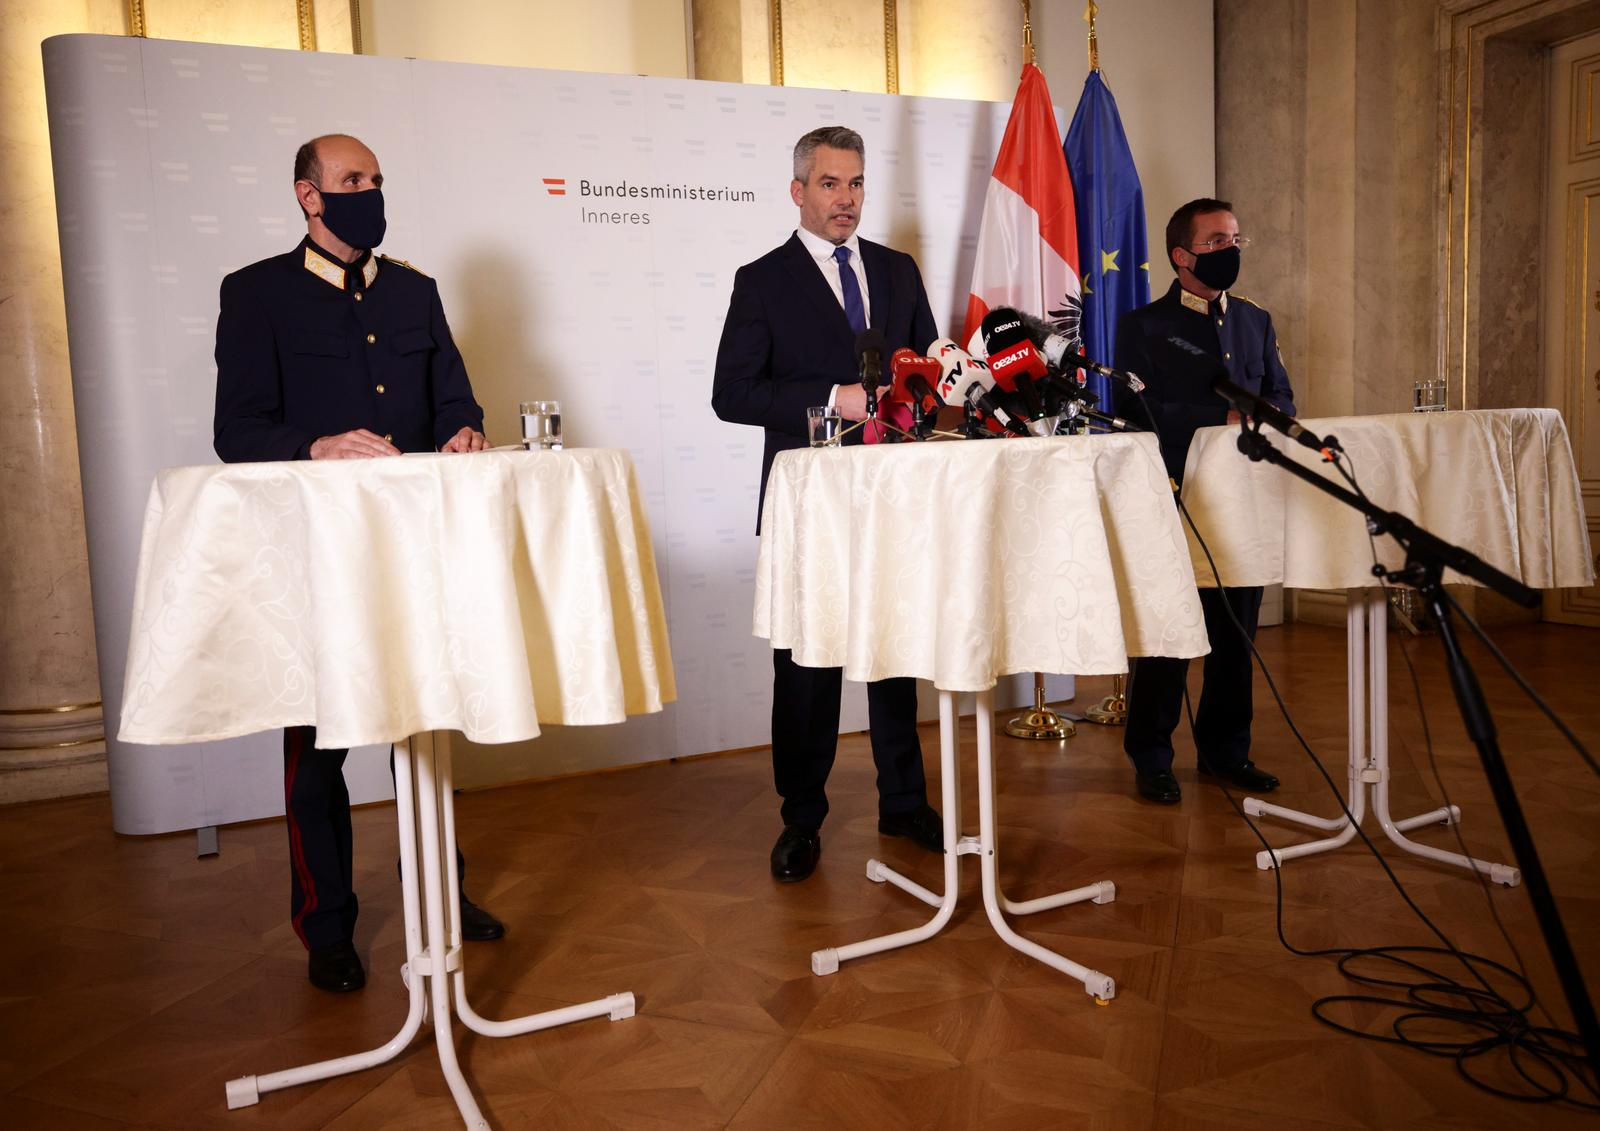 Austria's Interior Minister Karl Nehammer, general director for Public Security Franz Ruf and Vienna's Police President Gerhard Puerstl hold a news conference at the Interior Ministry after exchanges of gunfire in Vienna, Austria November 3, 2020. Photo: Reuters